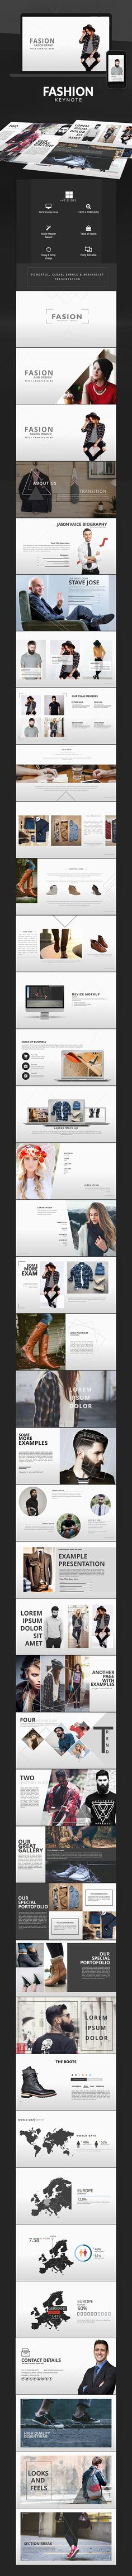 Buy Fashion - Keynote Template by slidercreative on GraphicRiver. MAIN FILE: Images Placeholder Drag And Drop image Theme Colour Option, Easy to change colors, Fully editable text, ph. Presentation Slides, Business Presentation, Image Theme, Keynote Template, Templates, Layouts, Ideas, Fashion, Moda